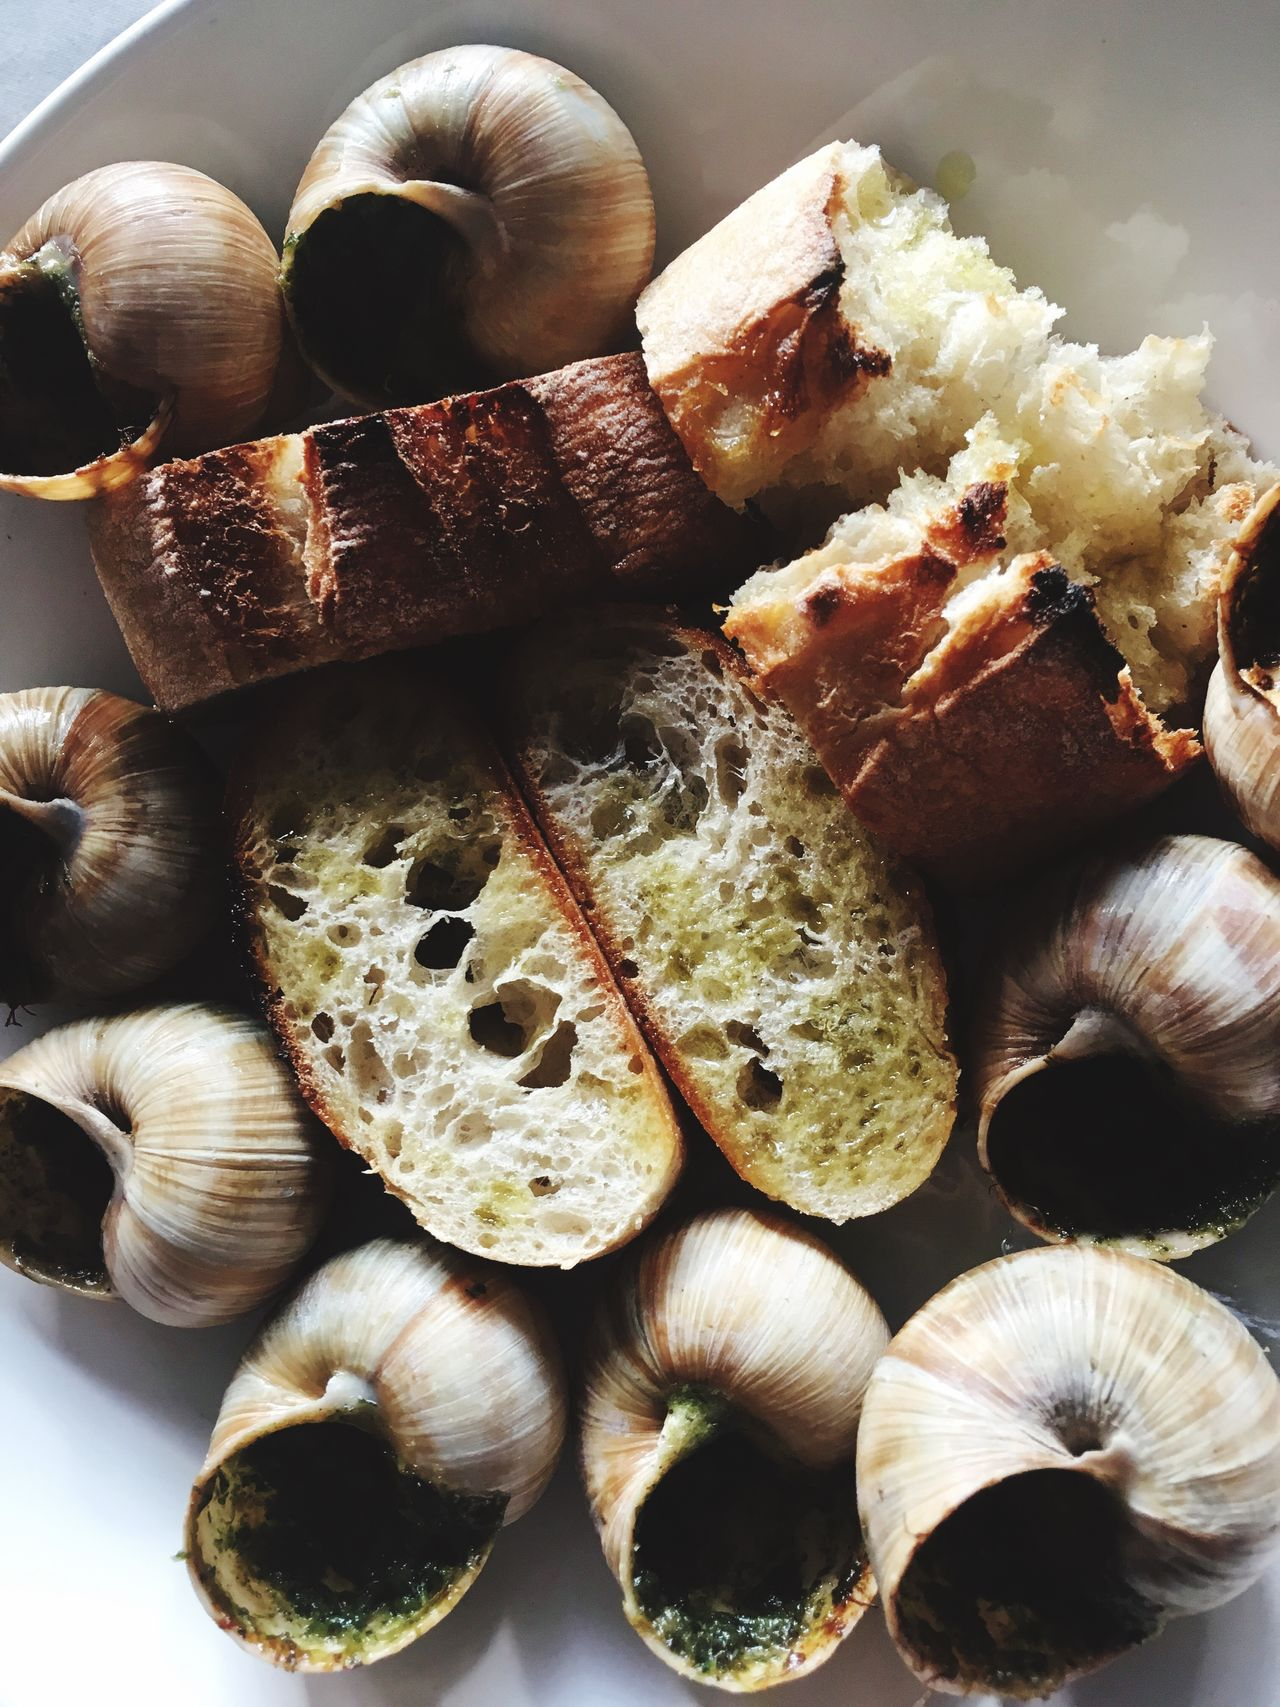 ShareTheMeal Escargot Bourgogne Garlicbread Food Food And Drink Healthy Eating Freshness No People Close-up Ready-to-eat Indoors  Day